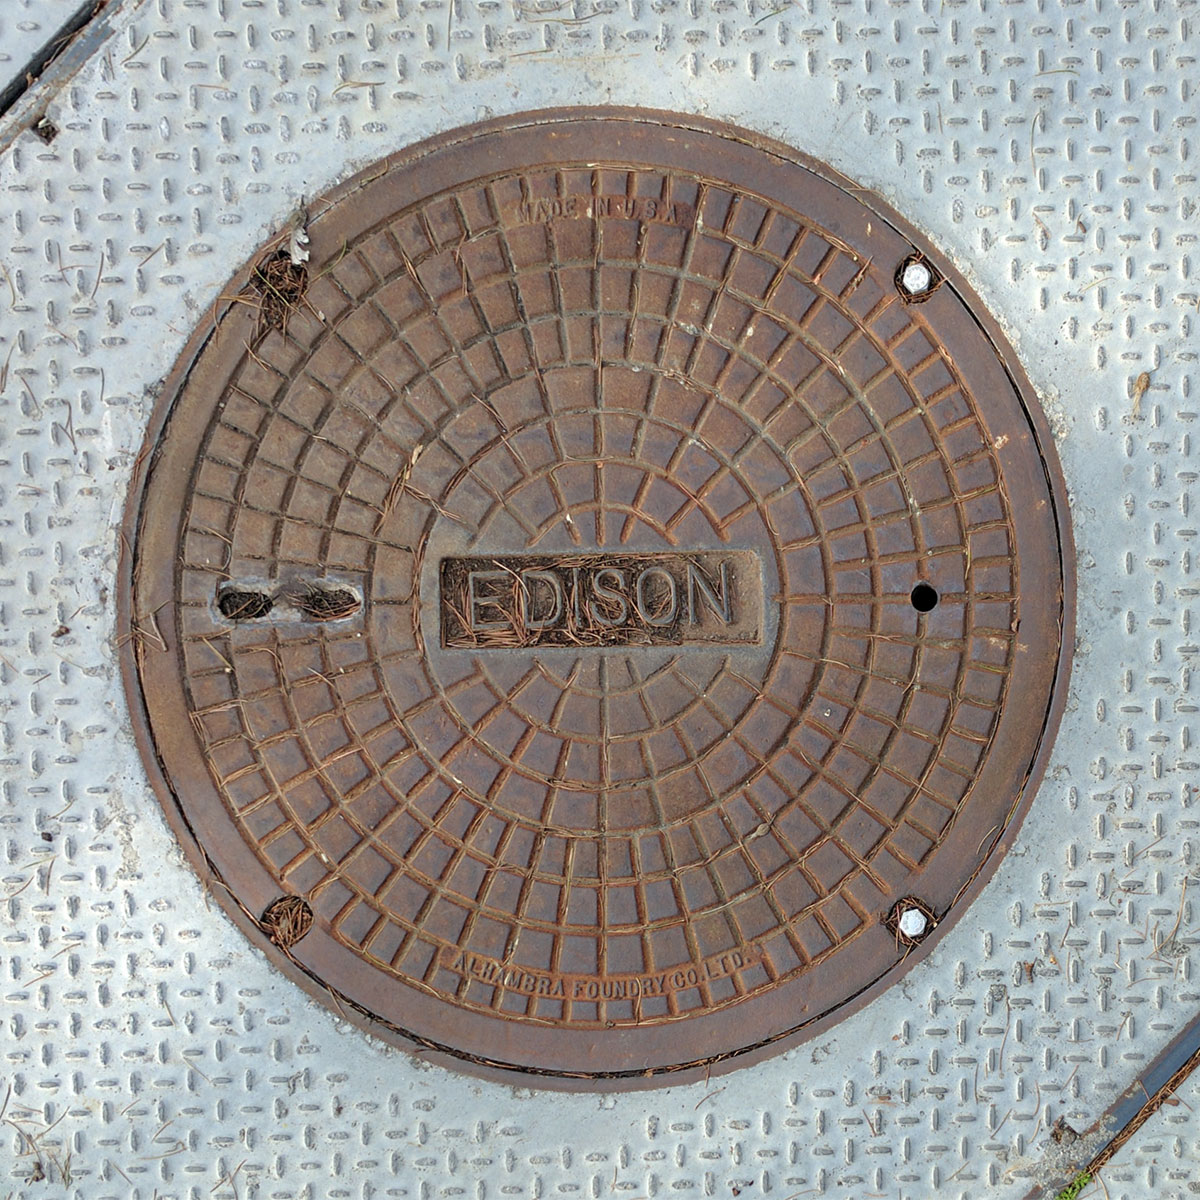 Edison utility cover with brown rust